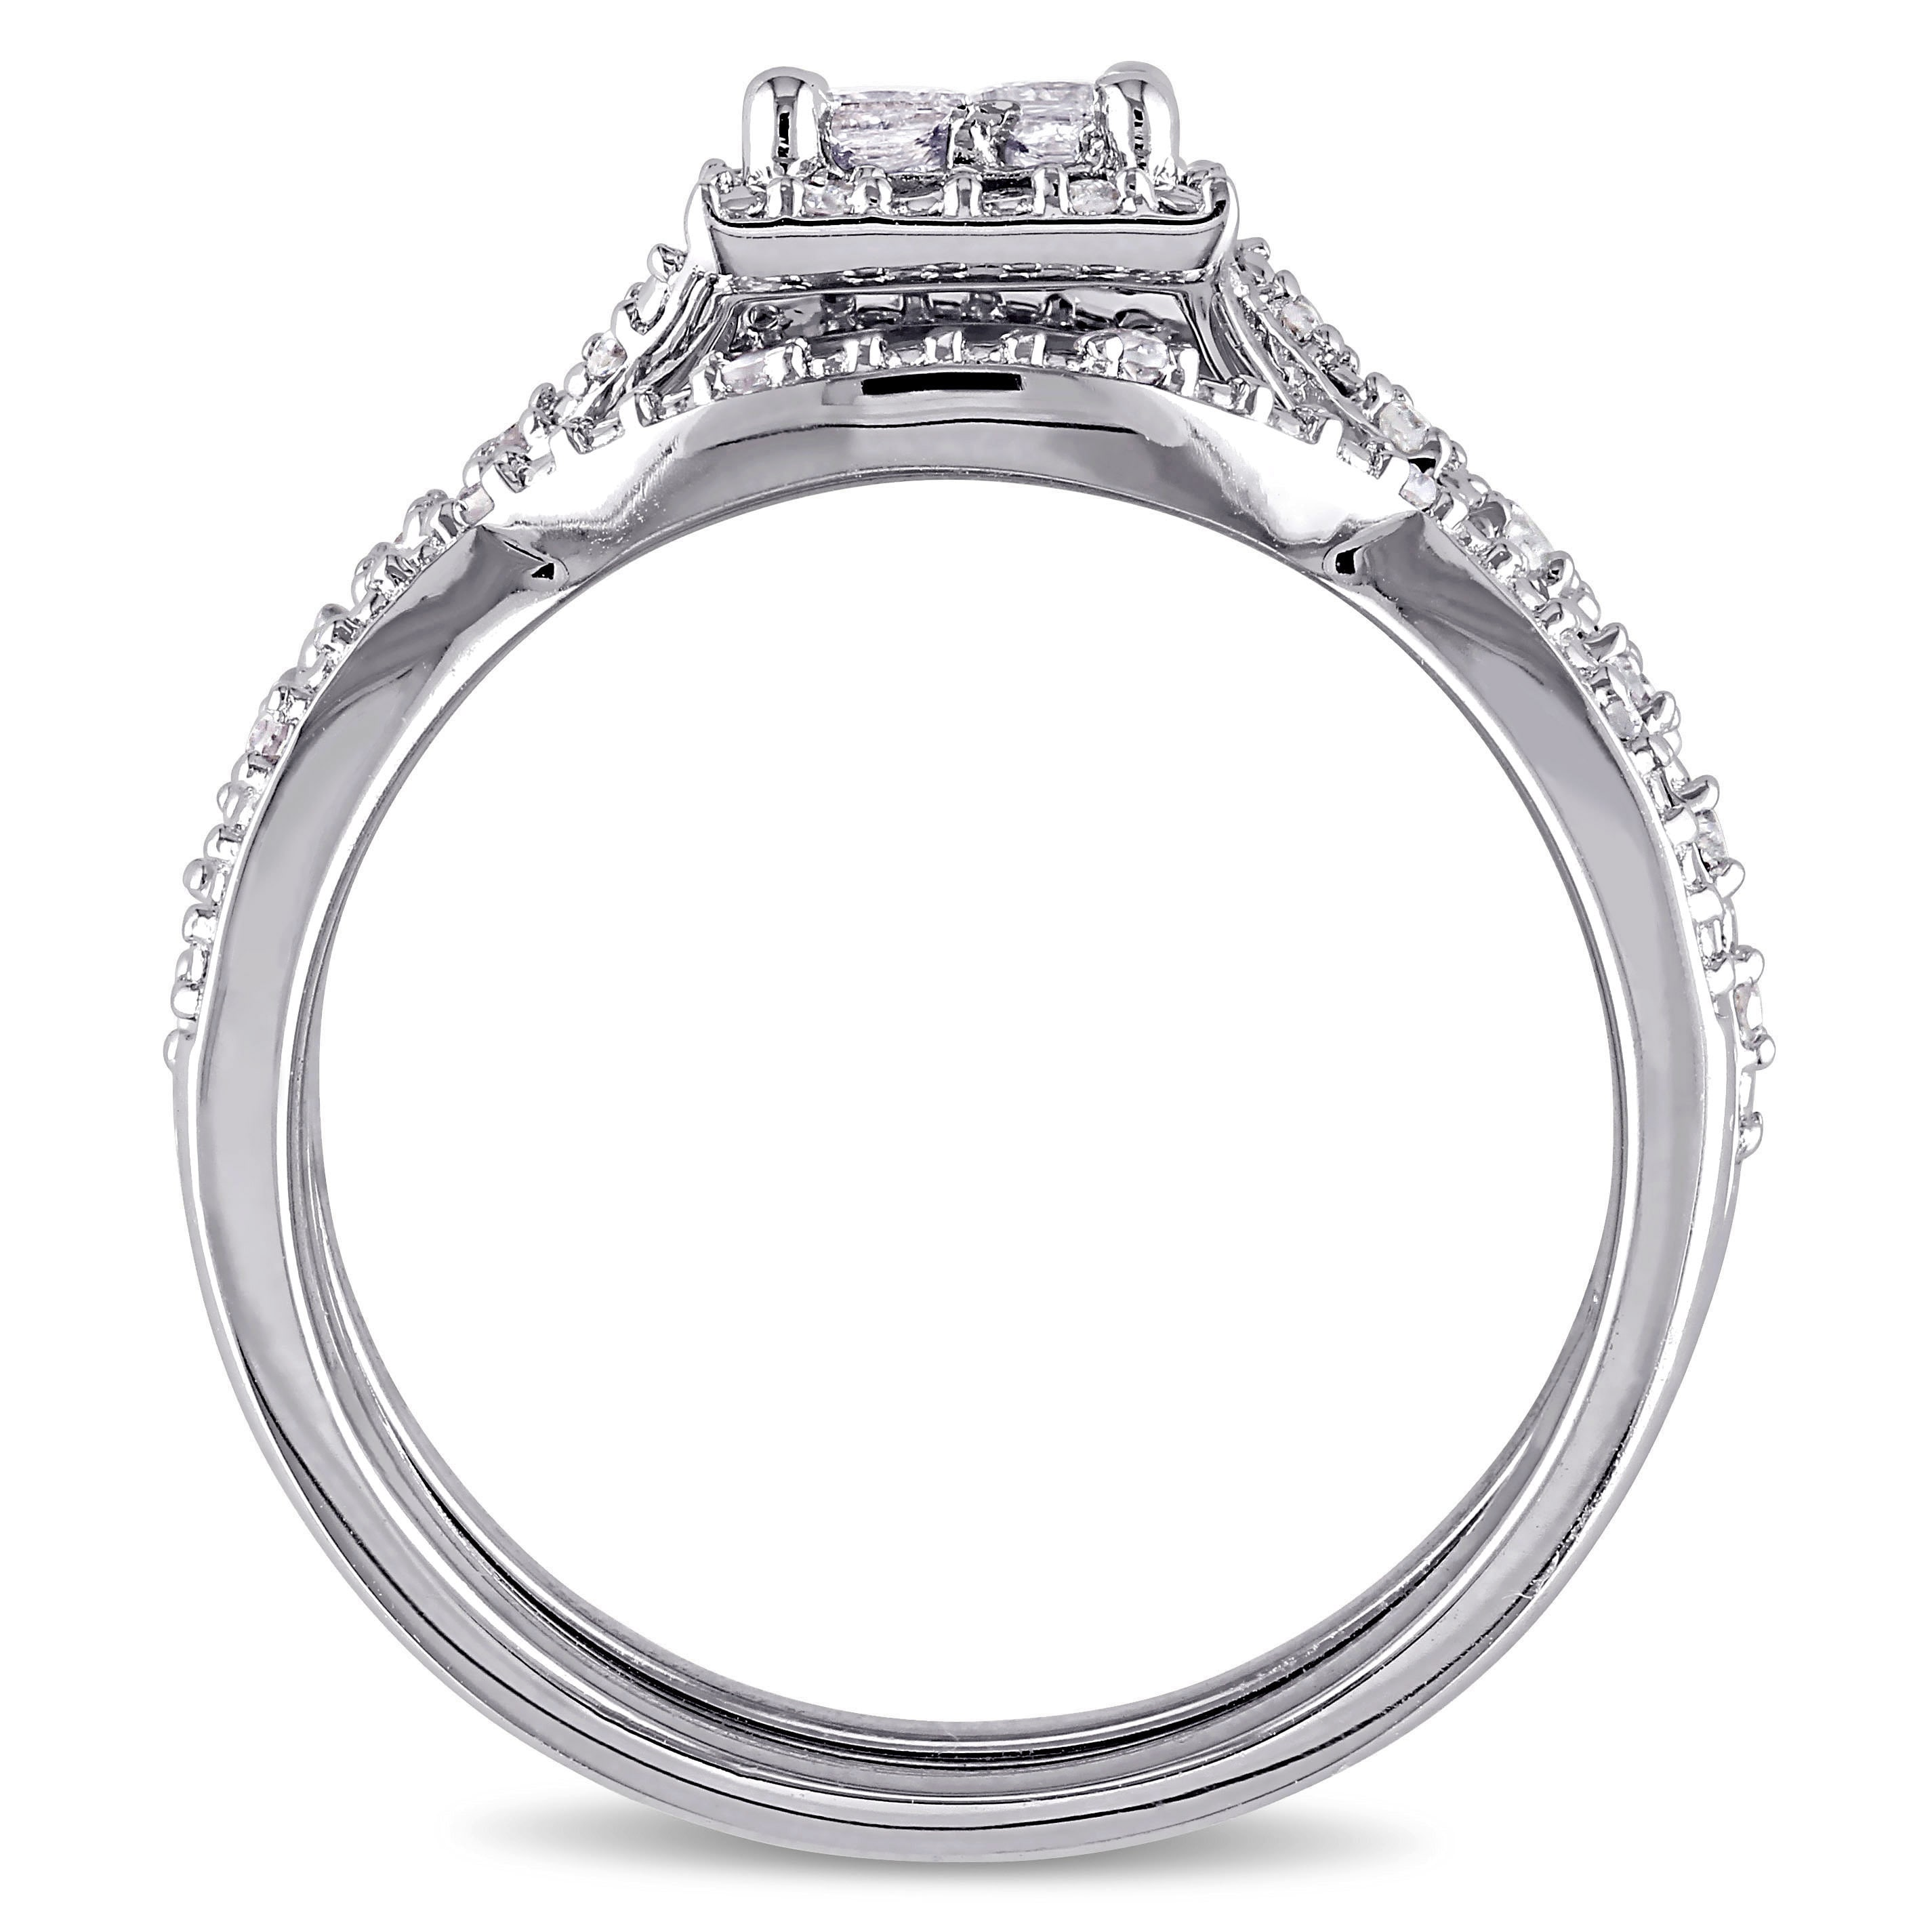 wedding of forever w carat sterling princess diamond quad inspirational com bride walmart t rings silver